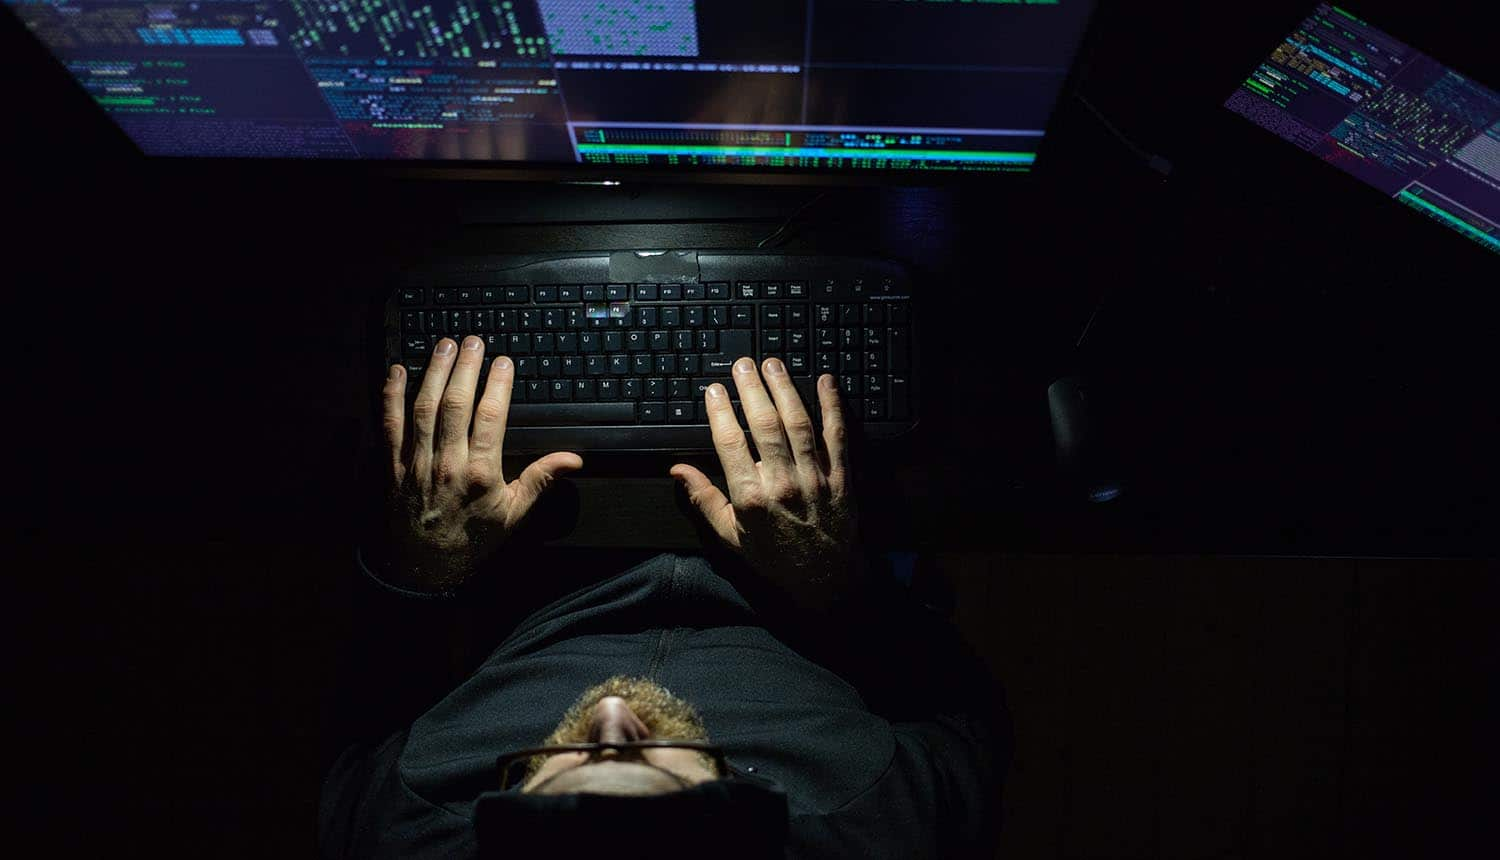 Hacker working at night showing suspected ransomware attack